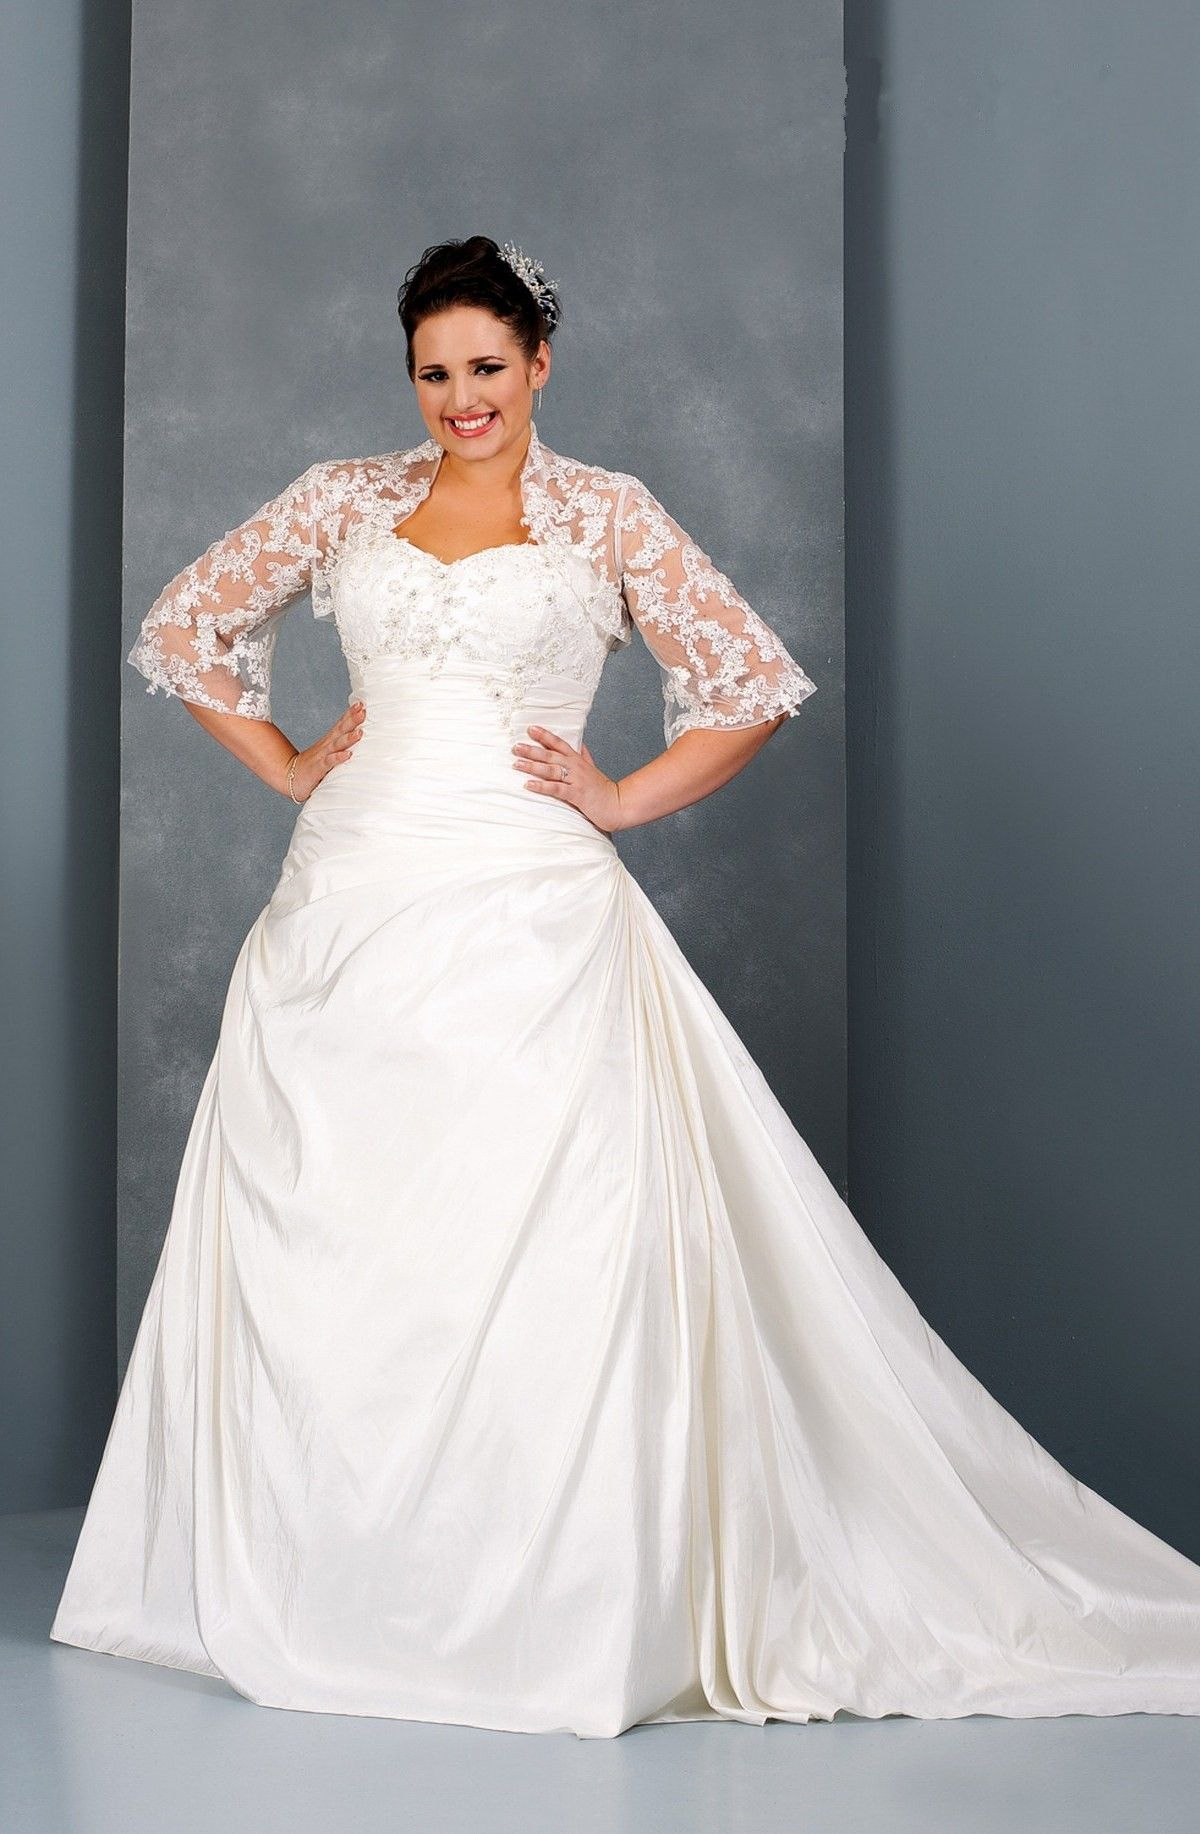 Plus Size Wedding Dresses With Long Sleeves – Gone are the days ...